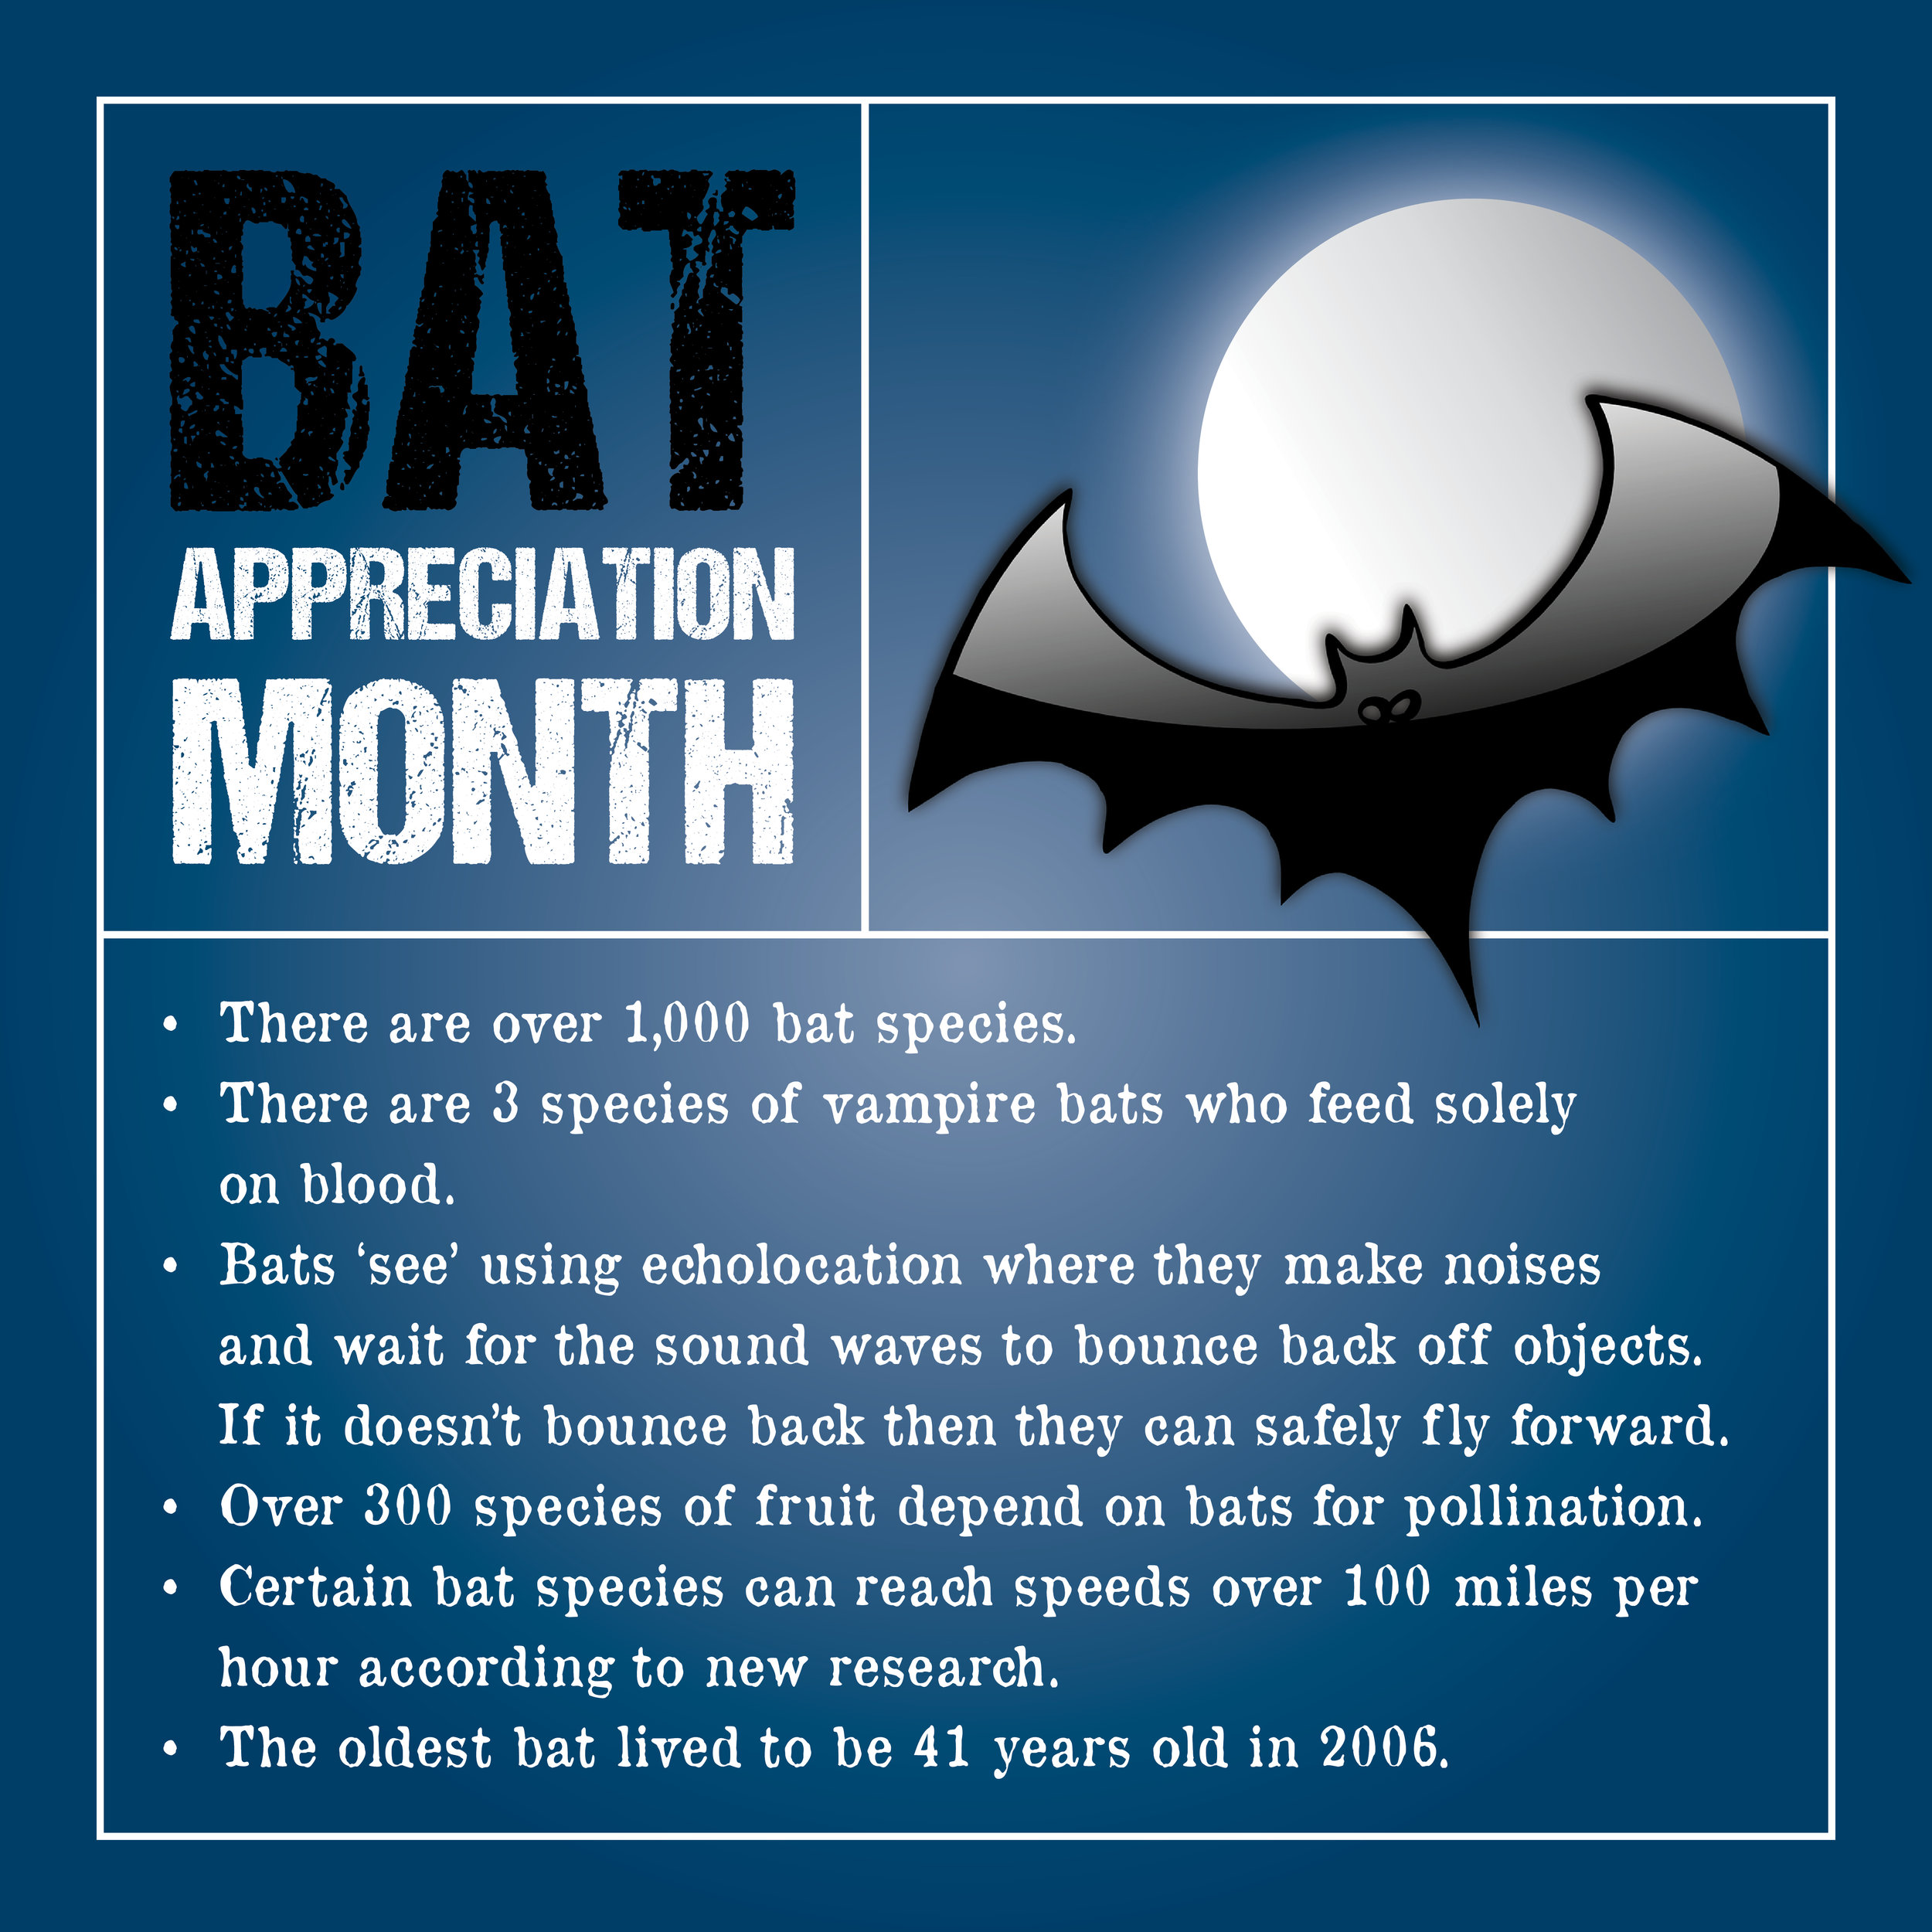 October is Bat Appreciation Month, so here are some fun facts about bats to prepare you for the month. These facts were provided by Science Kids.